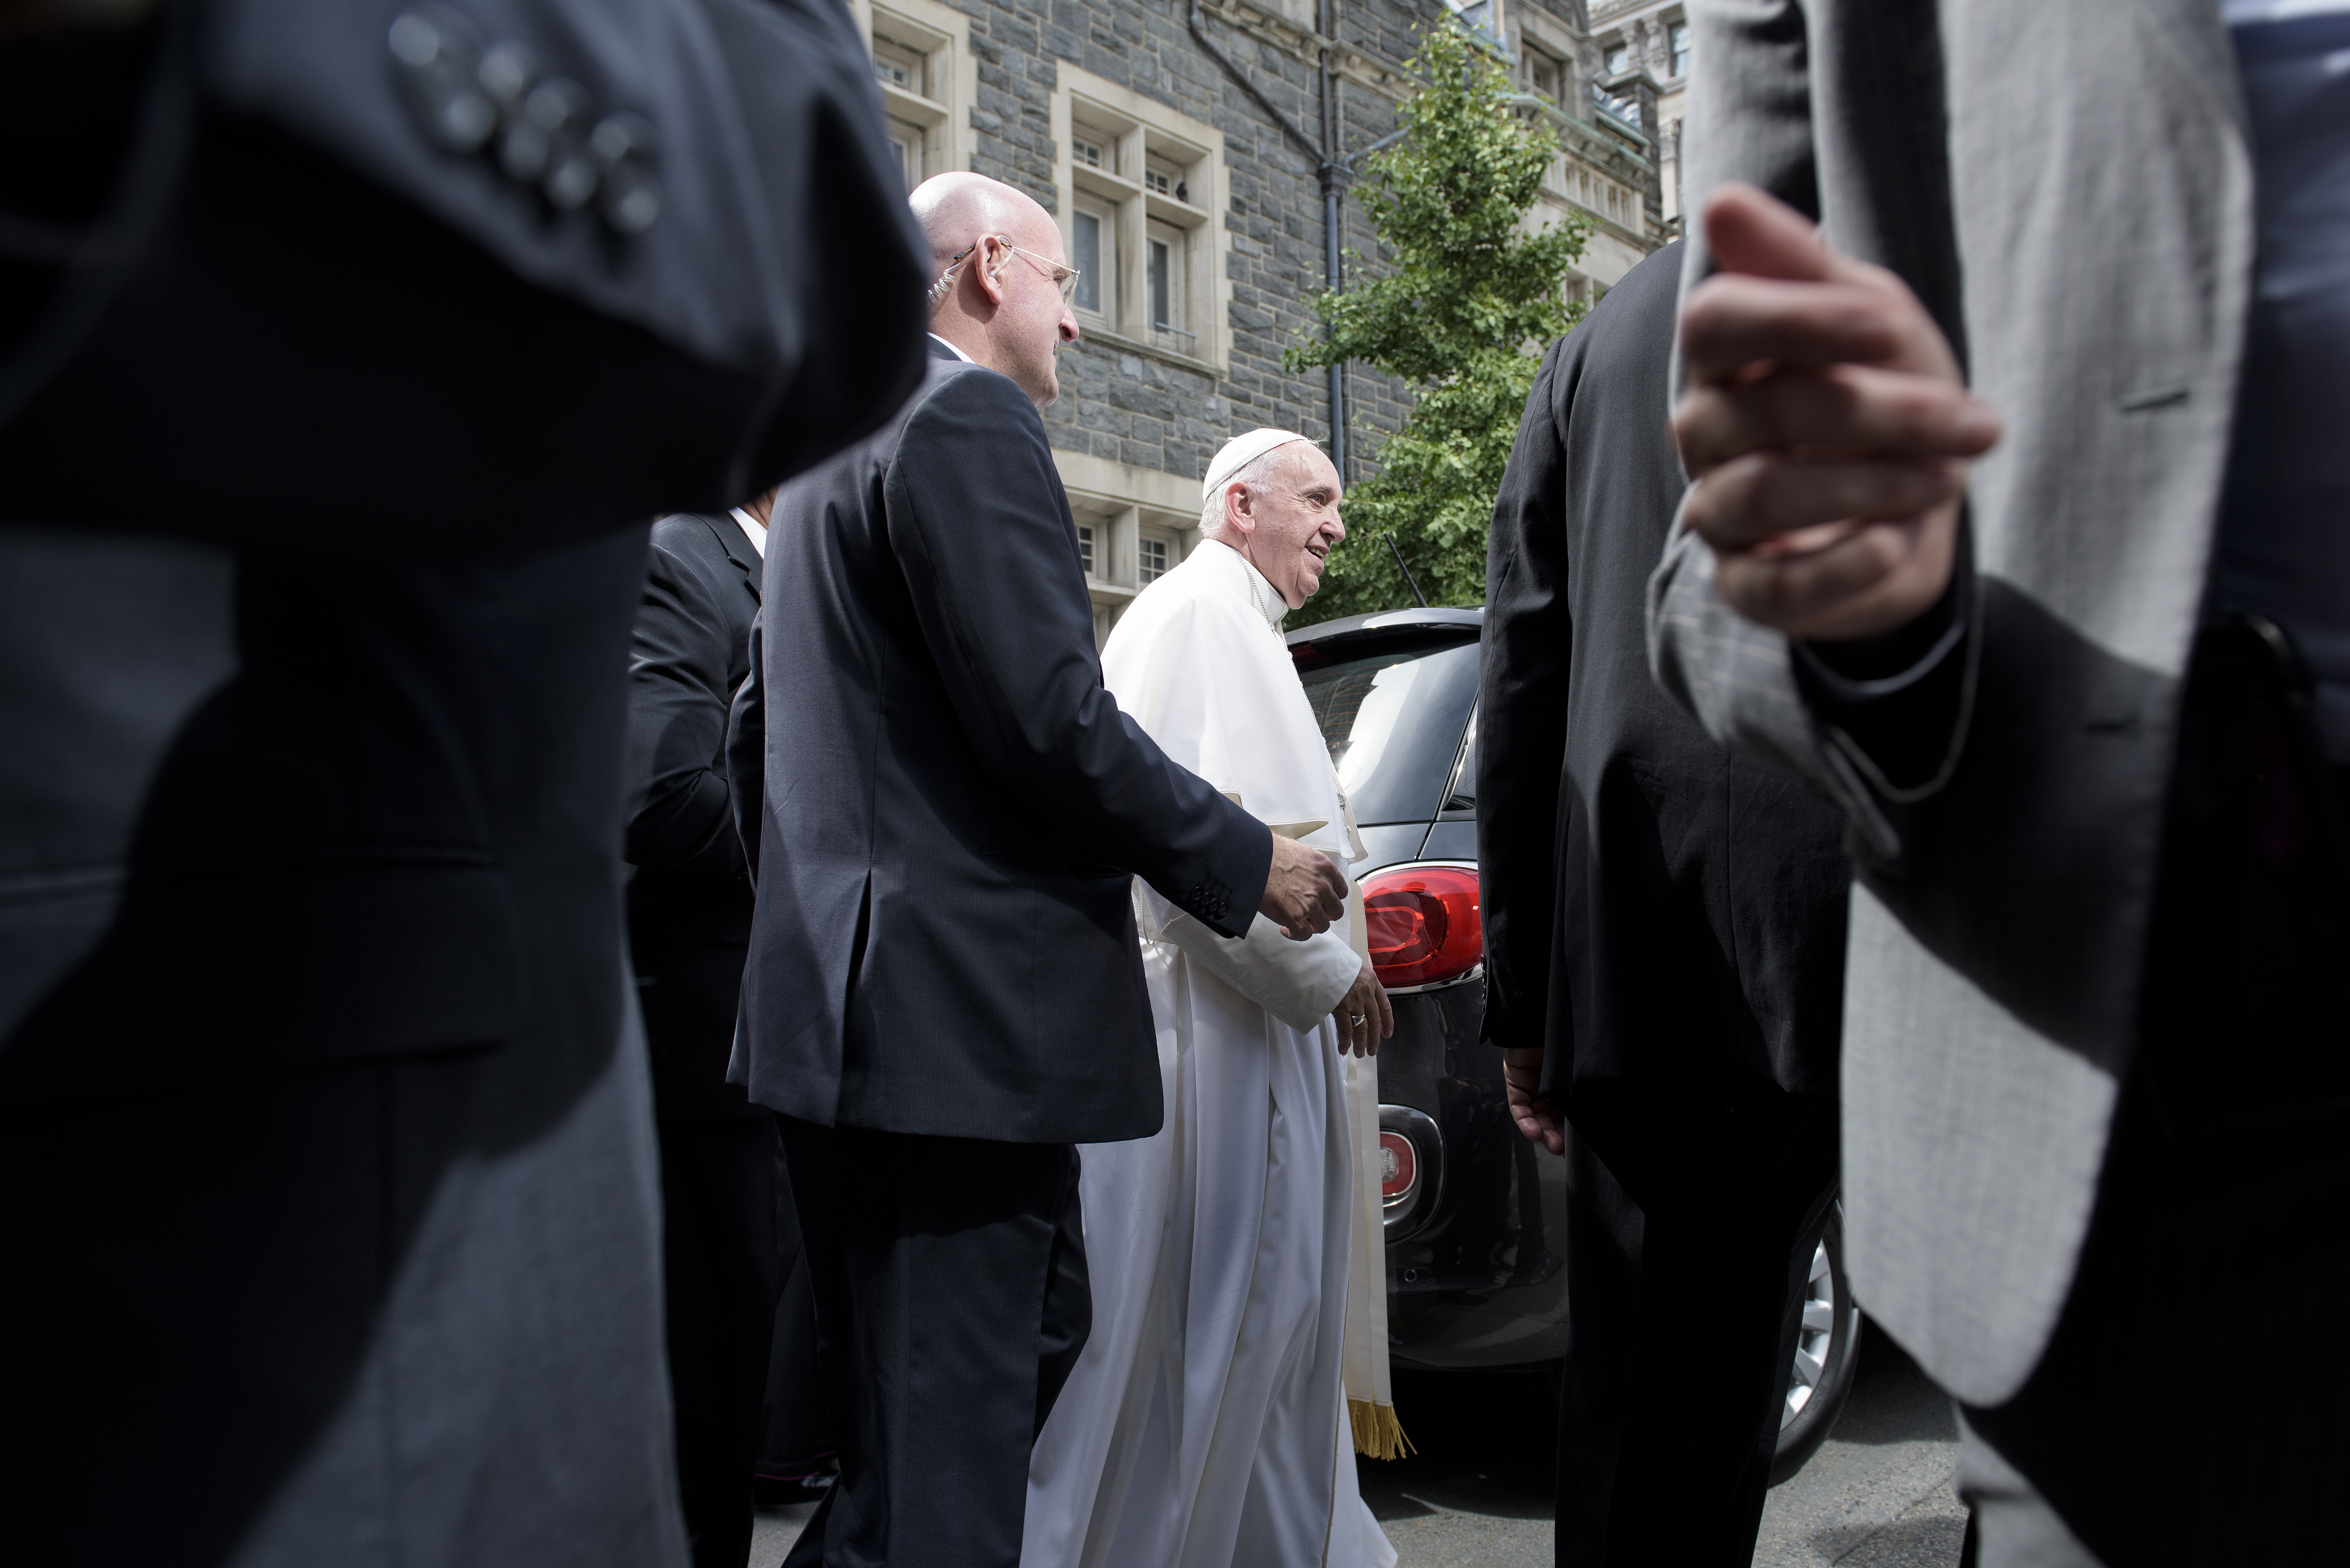 D.C. official: Pope visit went 'extremely well'